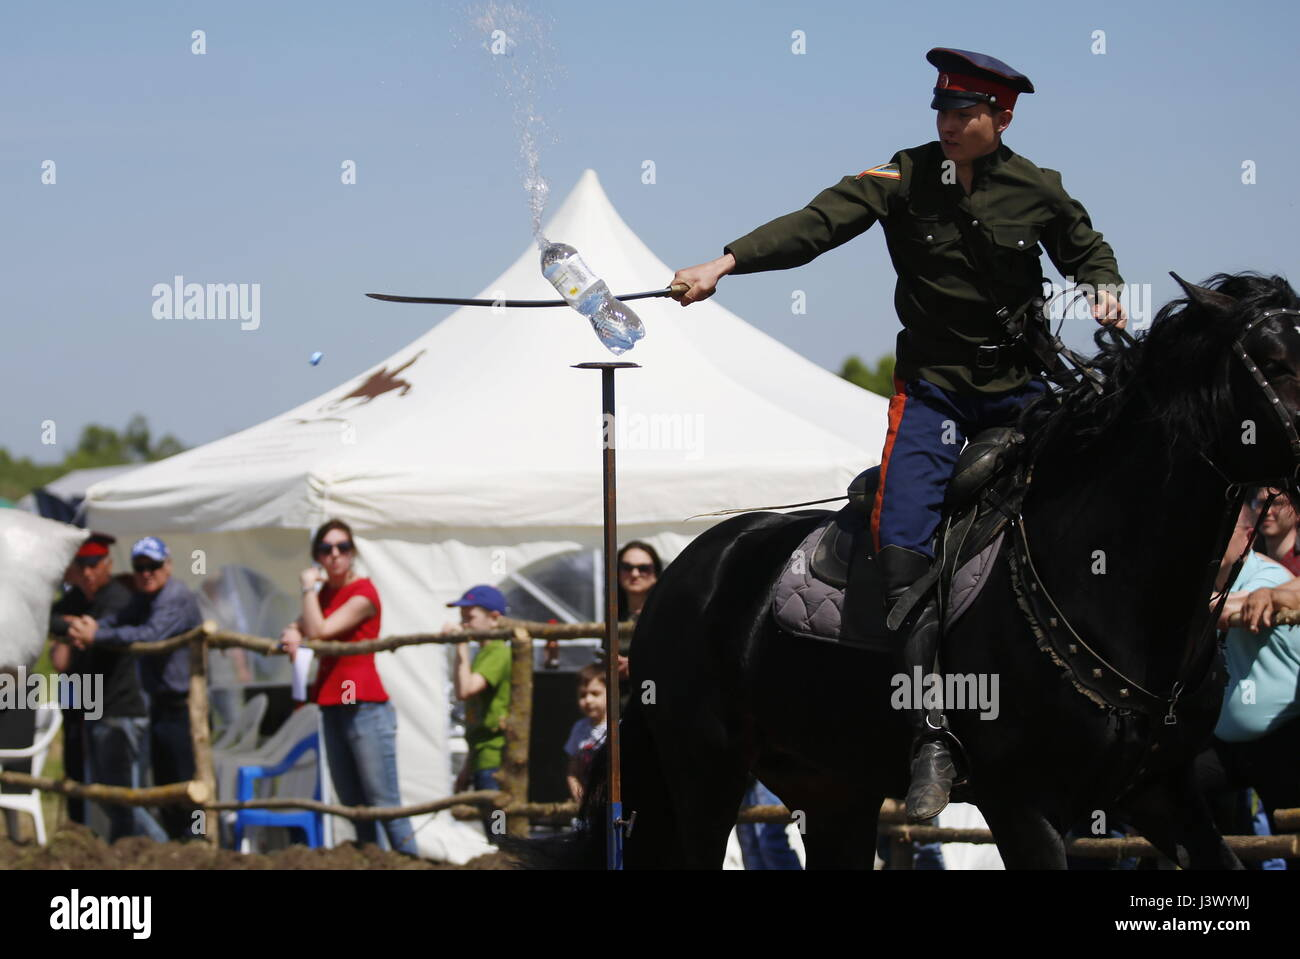 Rostov Region, Russia. 7th May, 2017. A participant sabre cuts water bottles at the Cossack national games, Shermitsii, Stock Photo